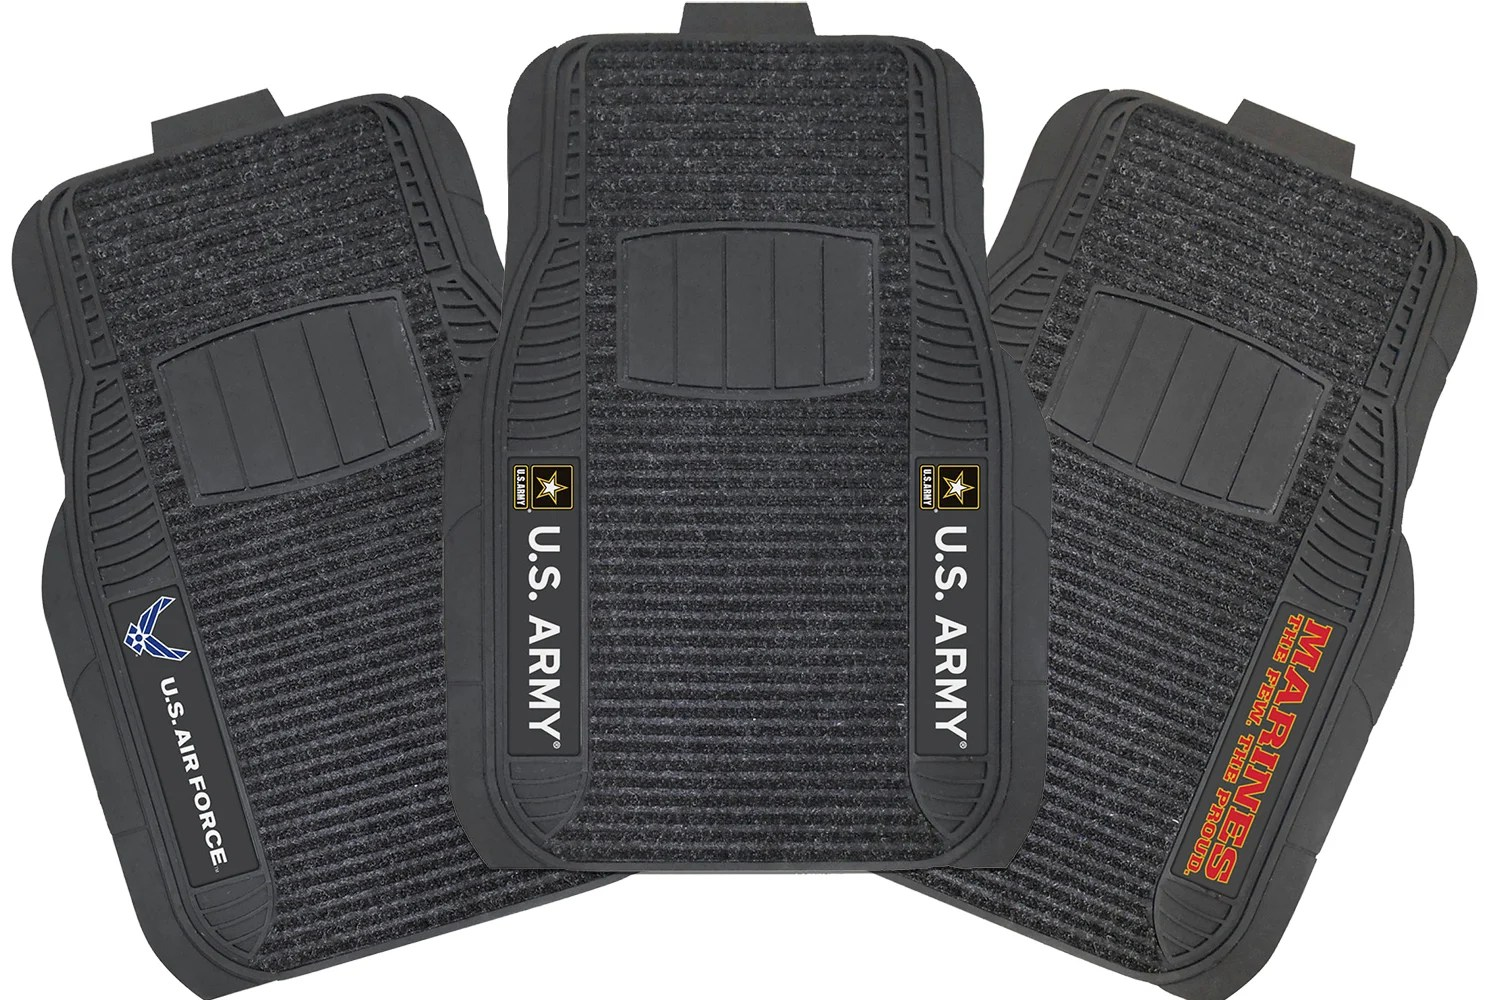 Auto Accessories Garage Military Discount Fanmats Military Deluxe Floor Mats